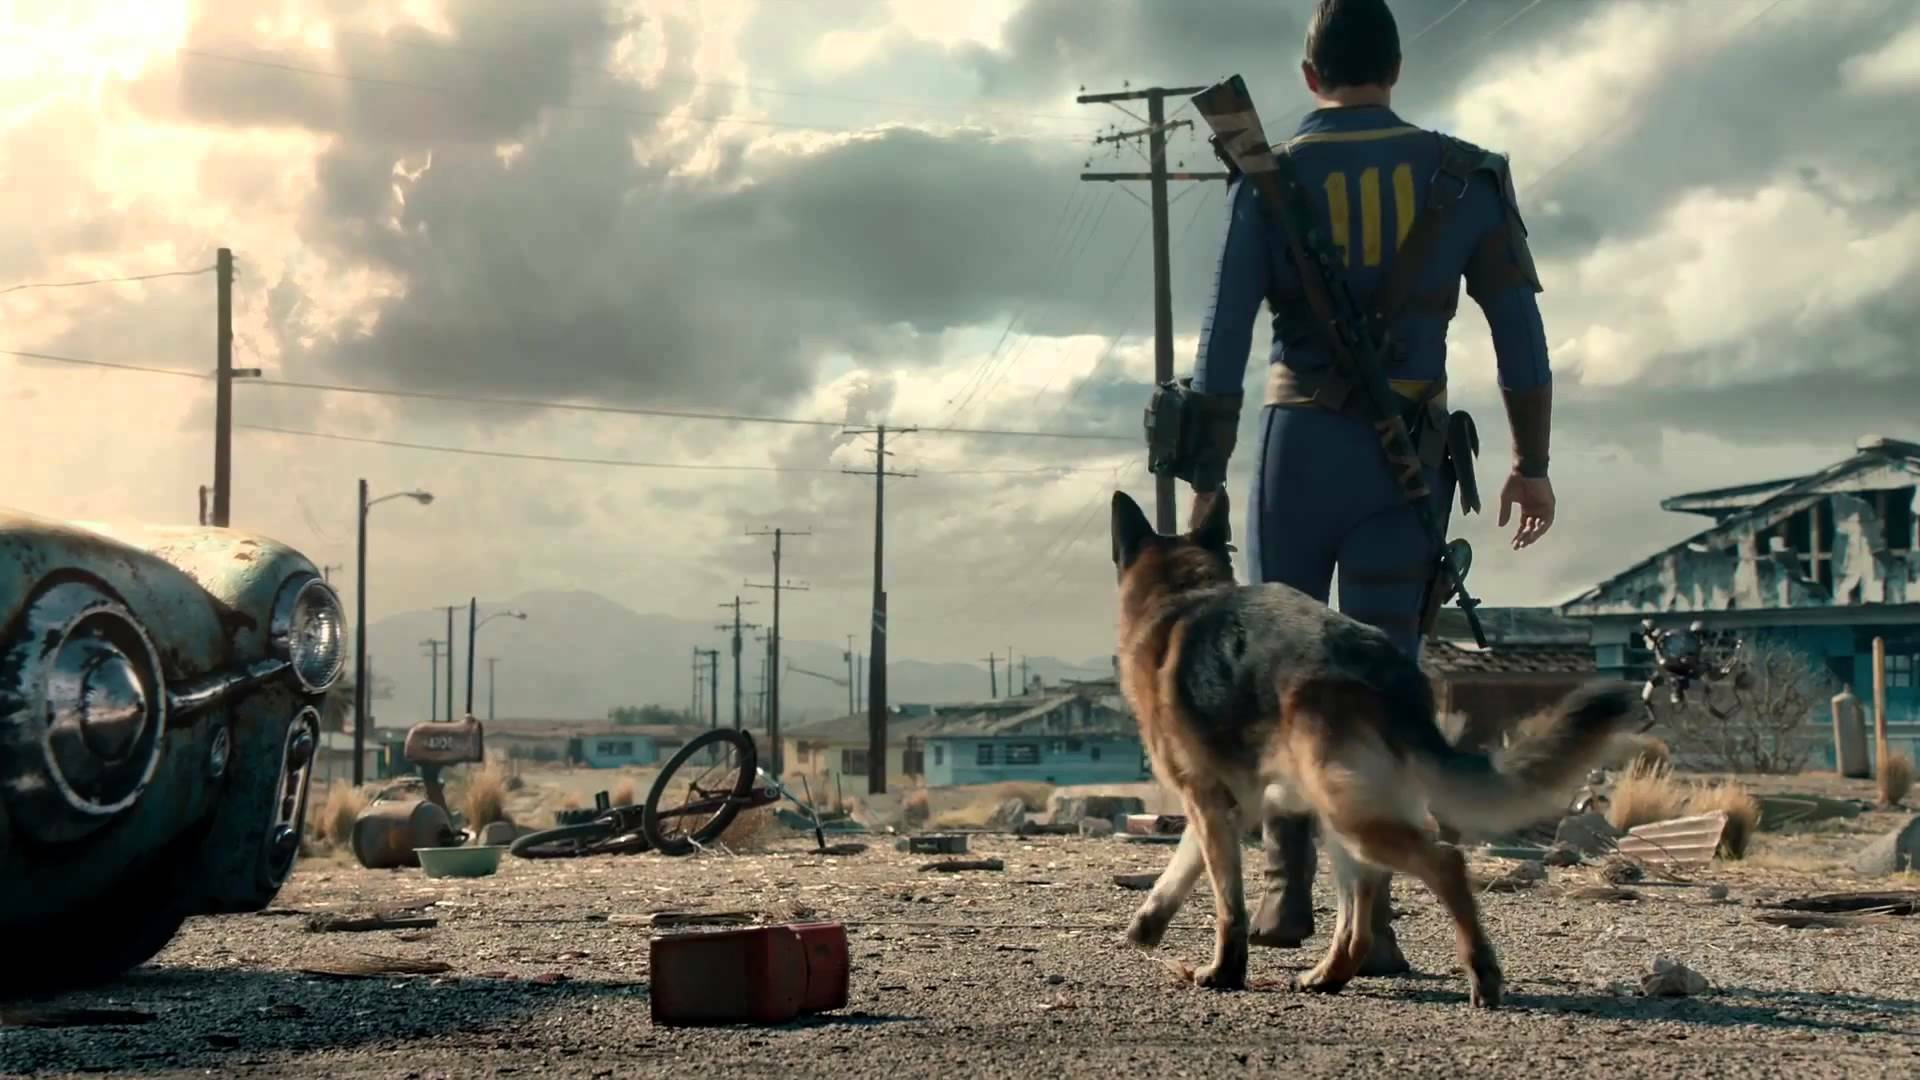 Fallout 4 Returns to Xbox Game Pass After Disappearing Last Year